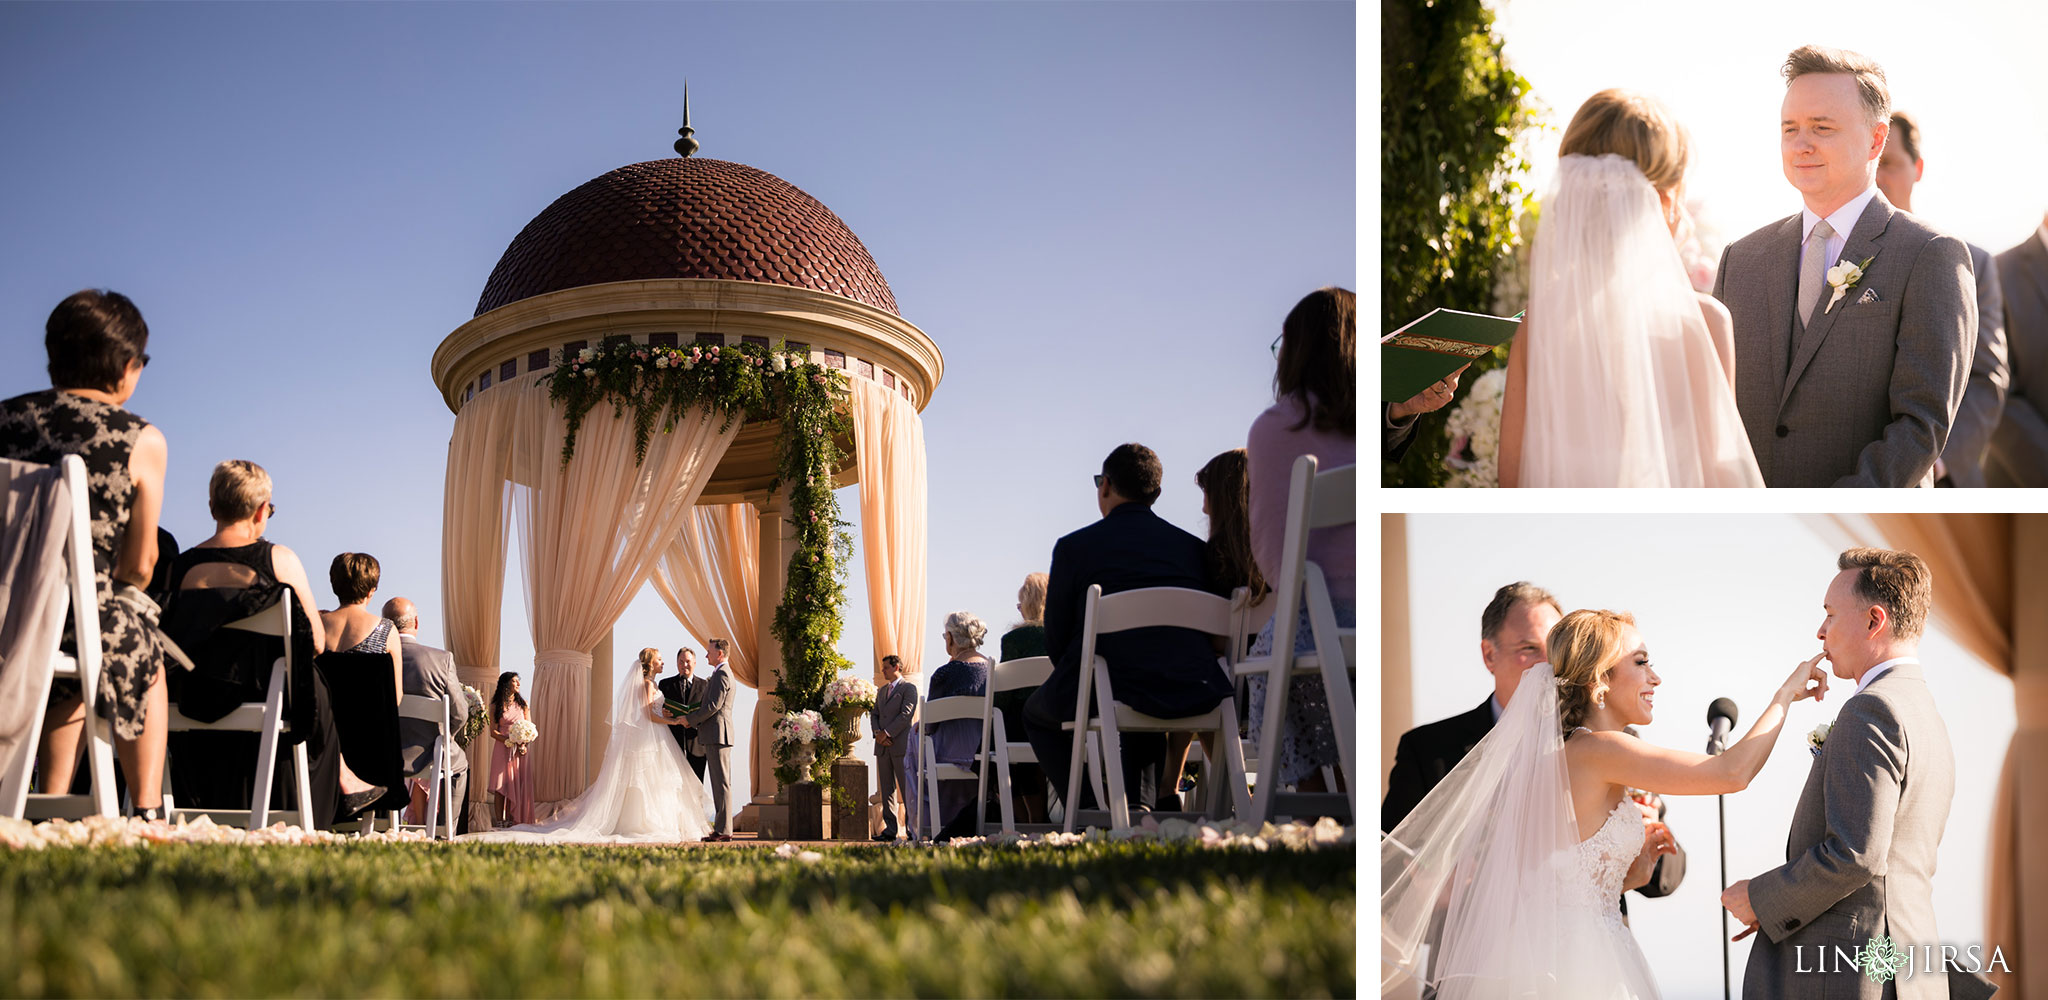 21 pelican hill resort newport coast wedding ceremony photography